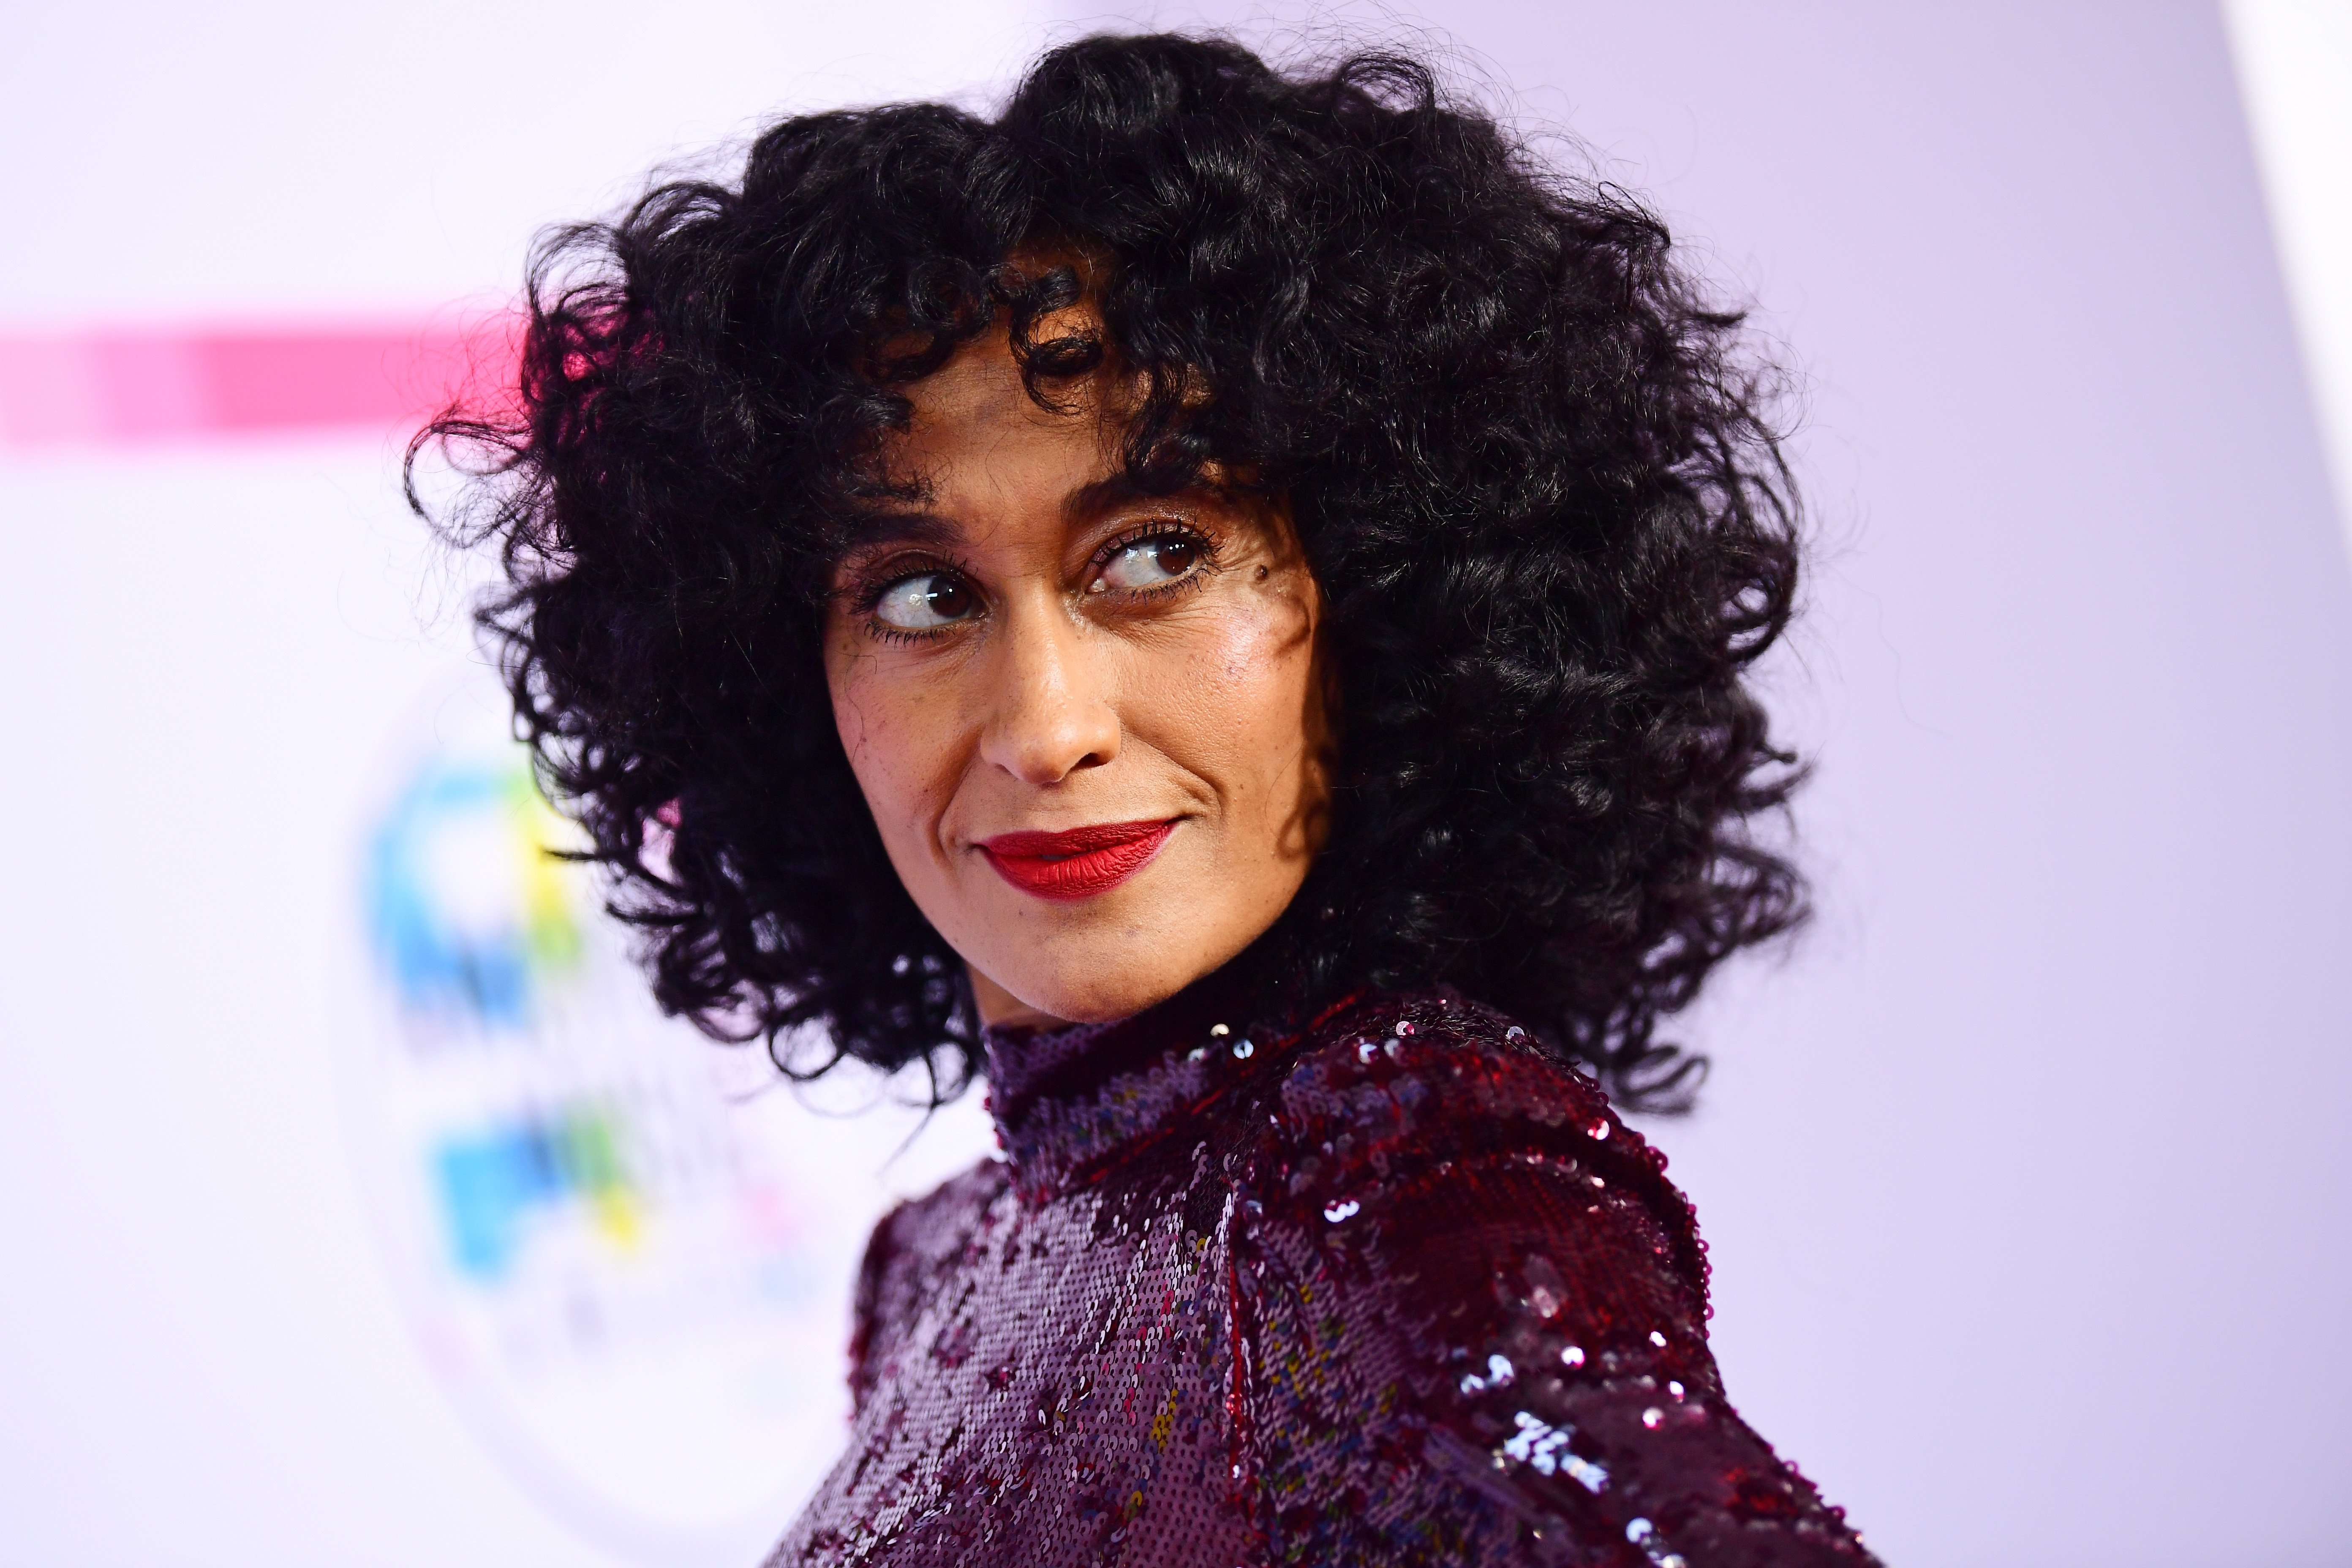 Tracee Ellis Ross at Microsoft Theater for the 2017 American Music Awards in Los Angeles, on November 19, 2017. | Photo: Getty Images